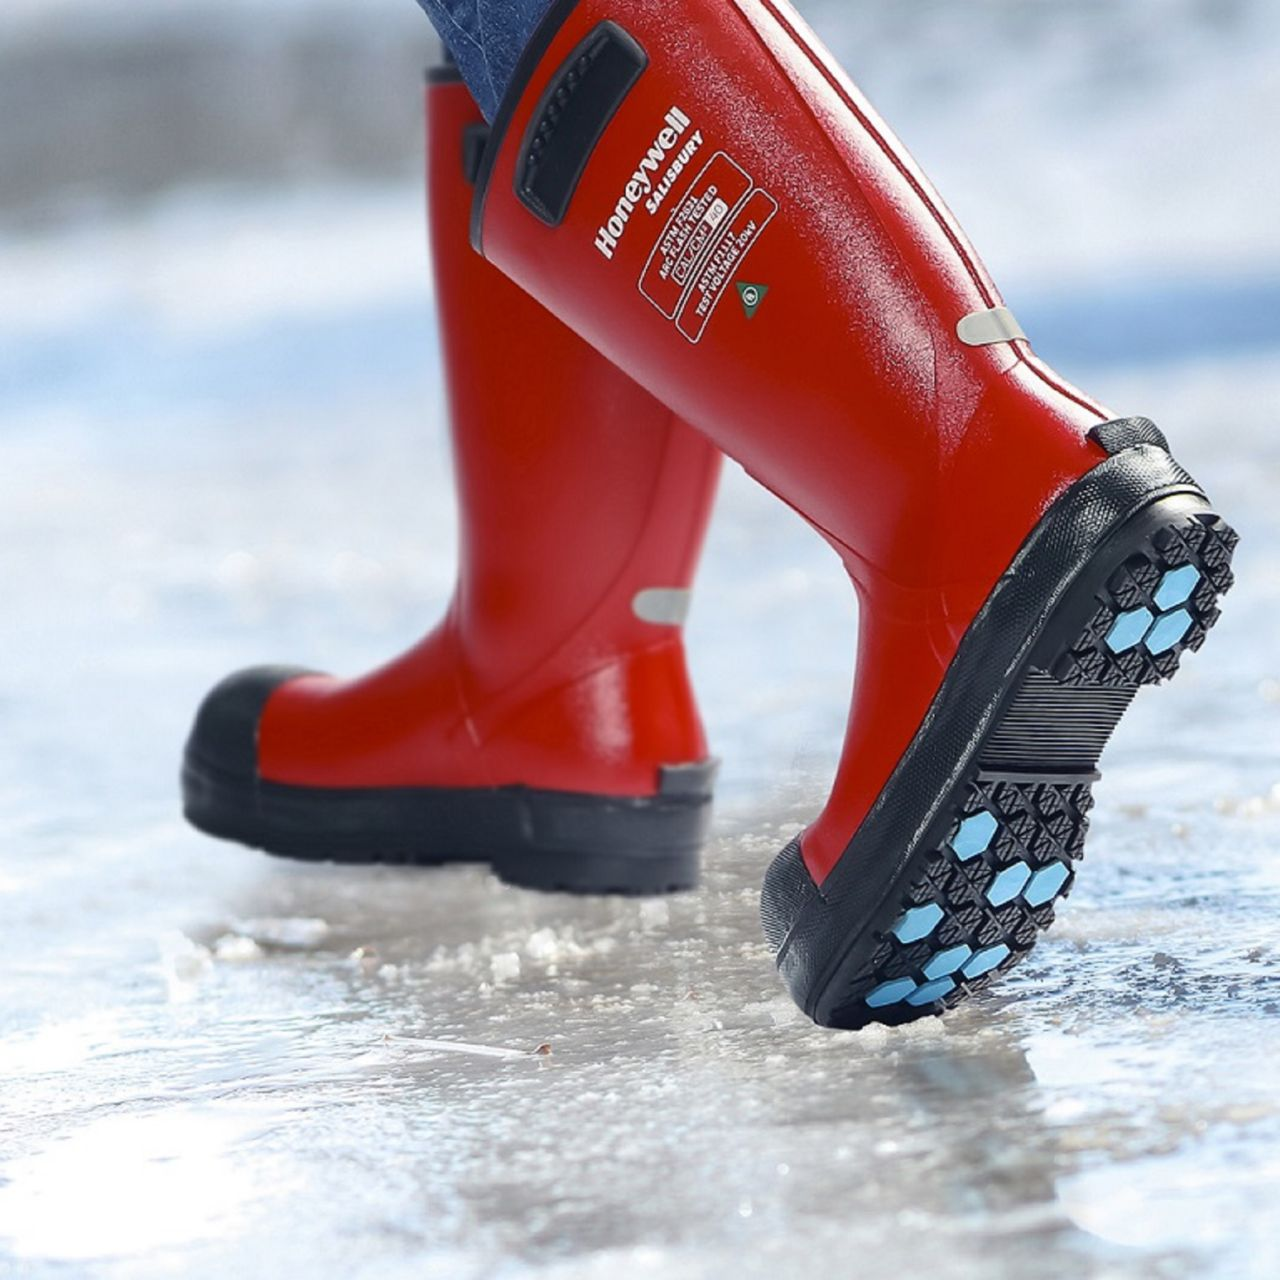 sps-his-electrigrip-thermal-boots-walking-on-ice